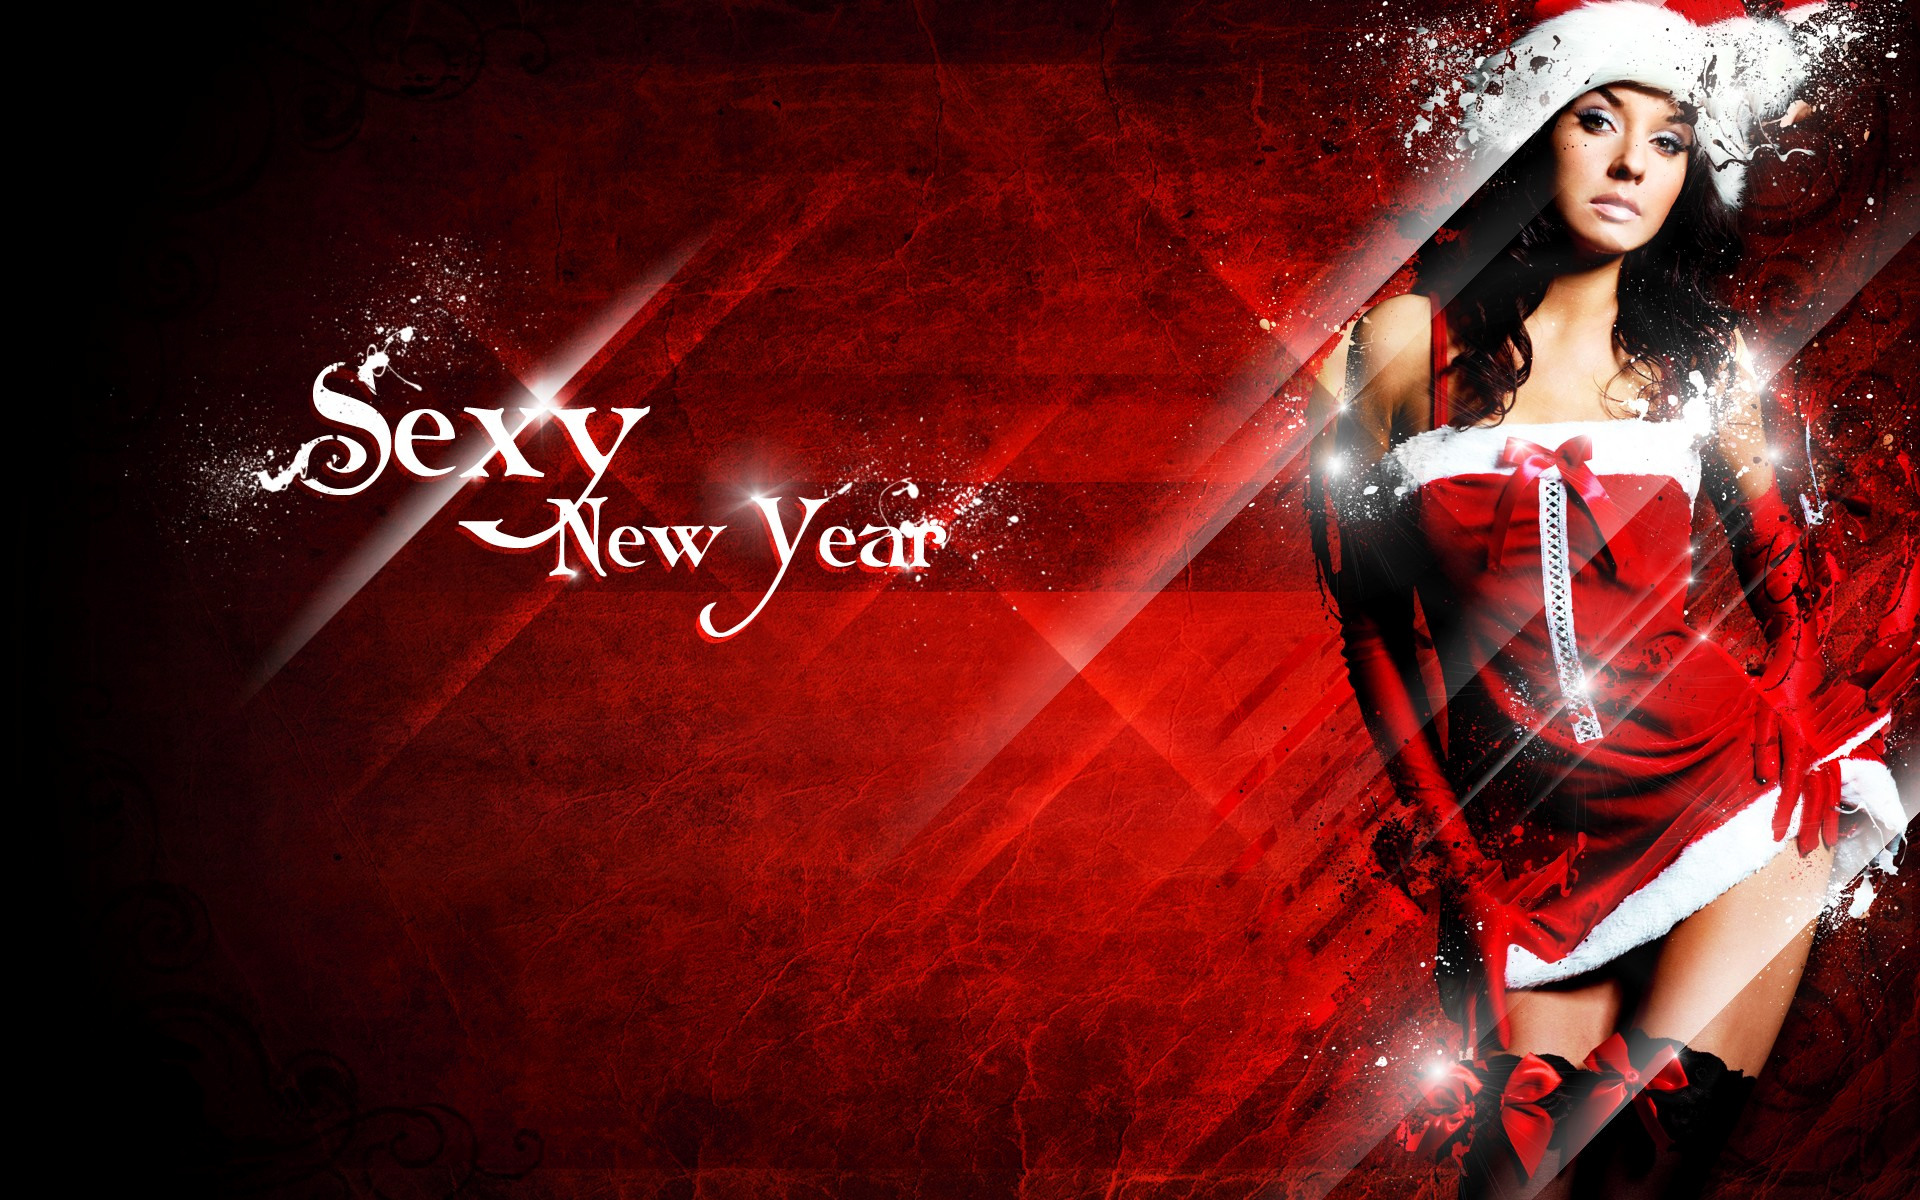 Sexy New Year